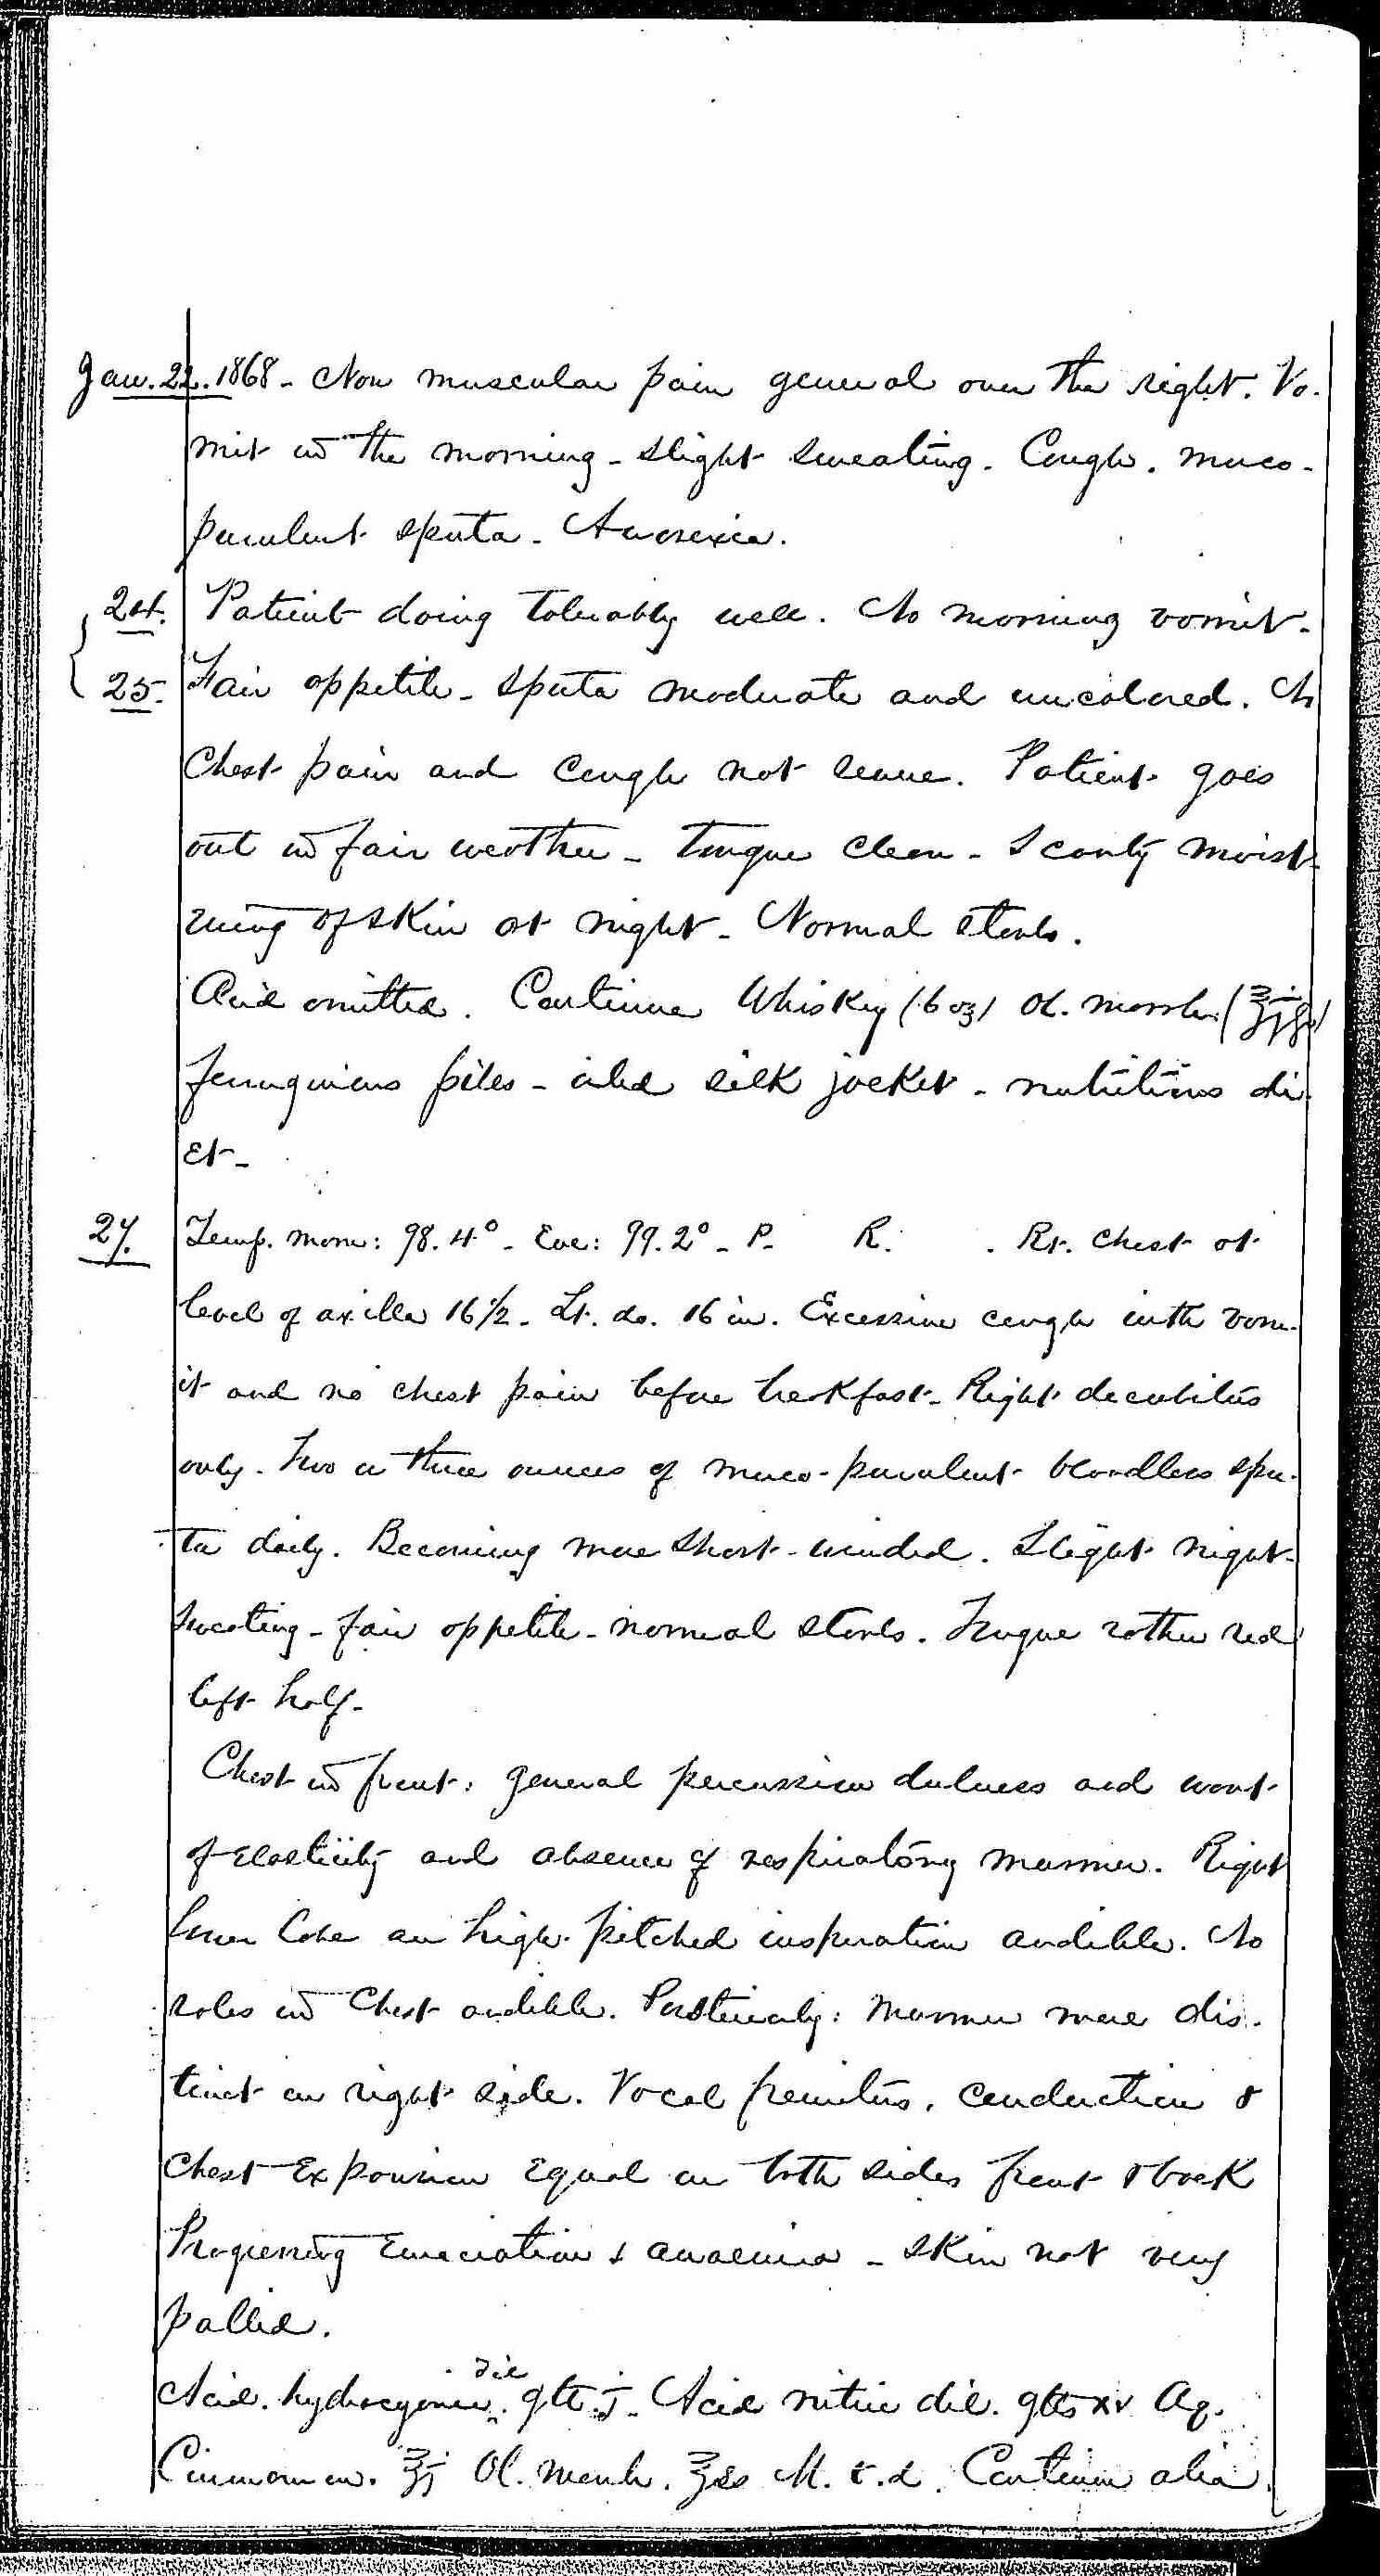 Entry for Hugh Riley (page 22 of 31) in the log Hospital Tickets and Case Papers - Naval Hospital - Washington, D.C. - 1868-69